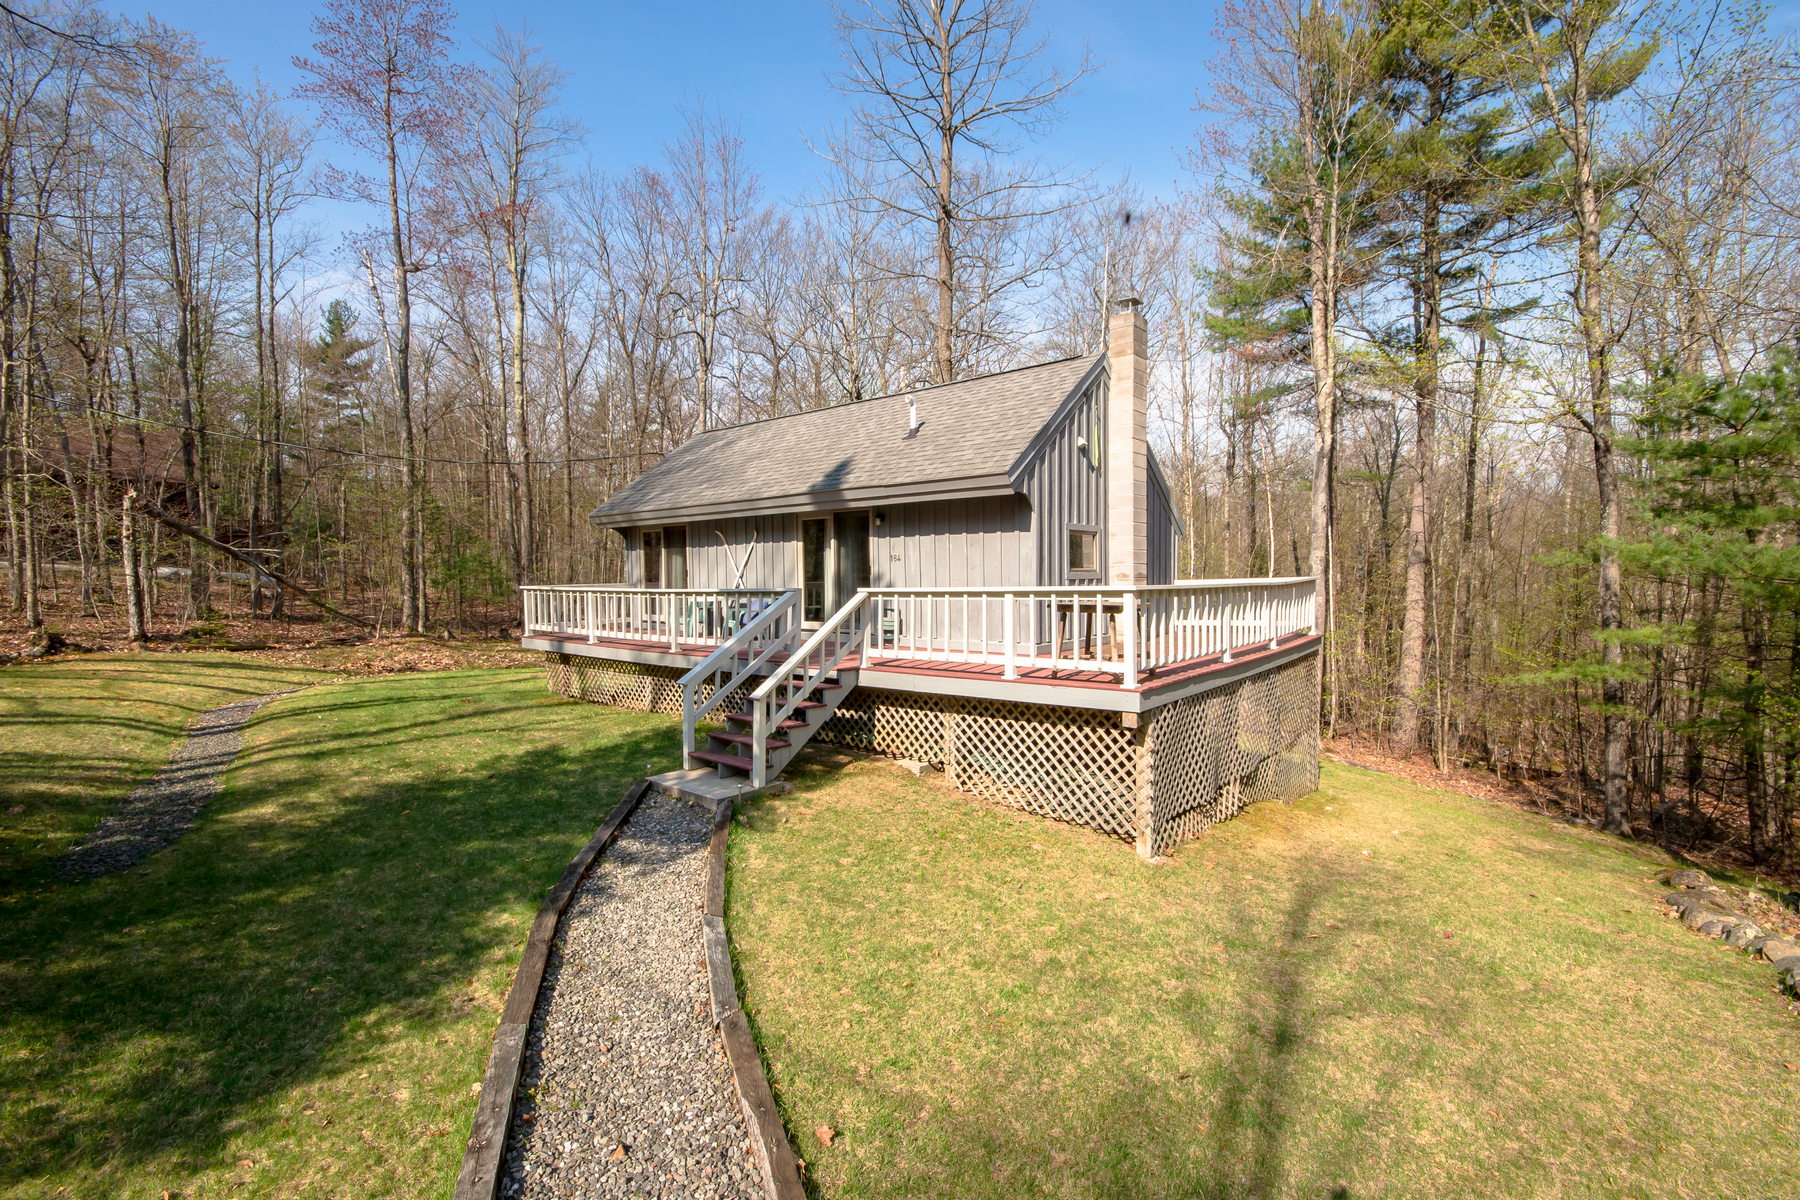 Single Family Homes for Active at Adirondack Escape 184 Sequoia Mountain Ln Jay, New York 12941 United States